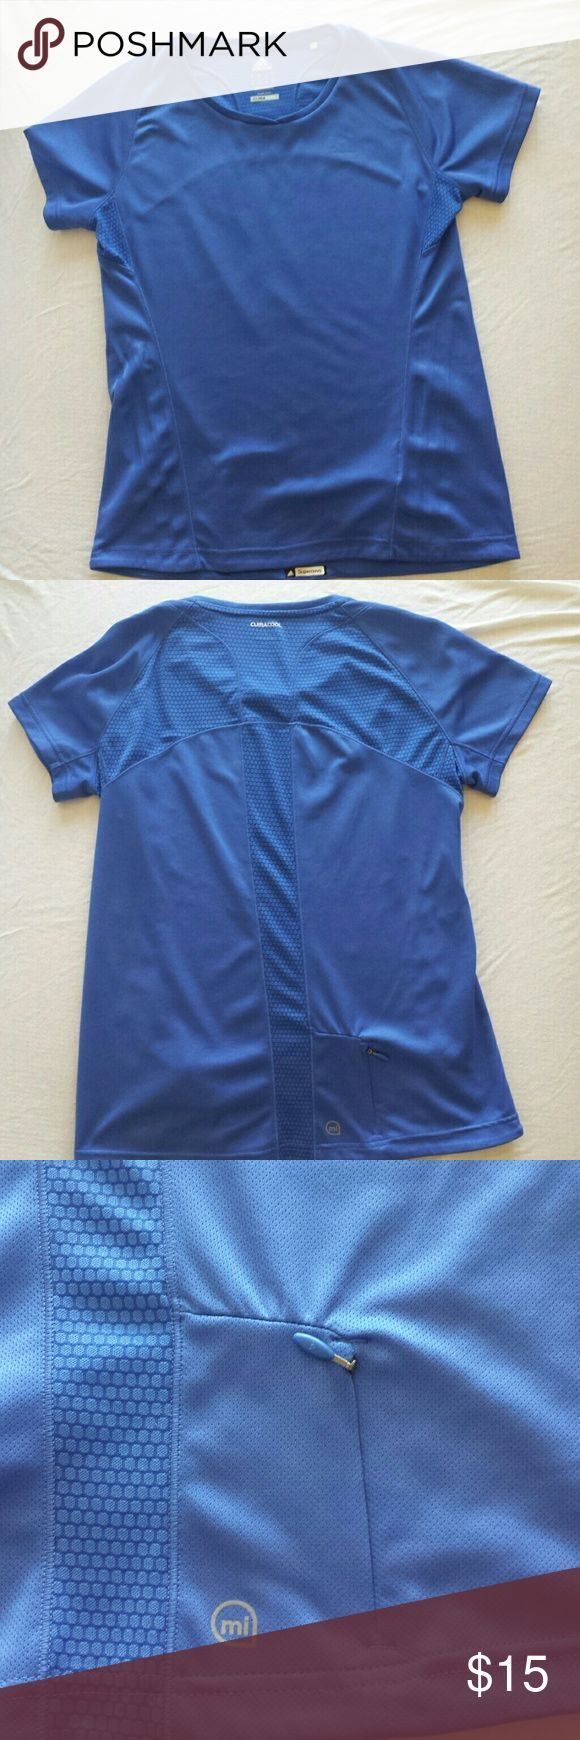 Adidas Supernova Running Top Adidas running top. Small zippered pocket, about the size of an ID/CC, located on the lower back side. adidas Tops